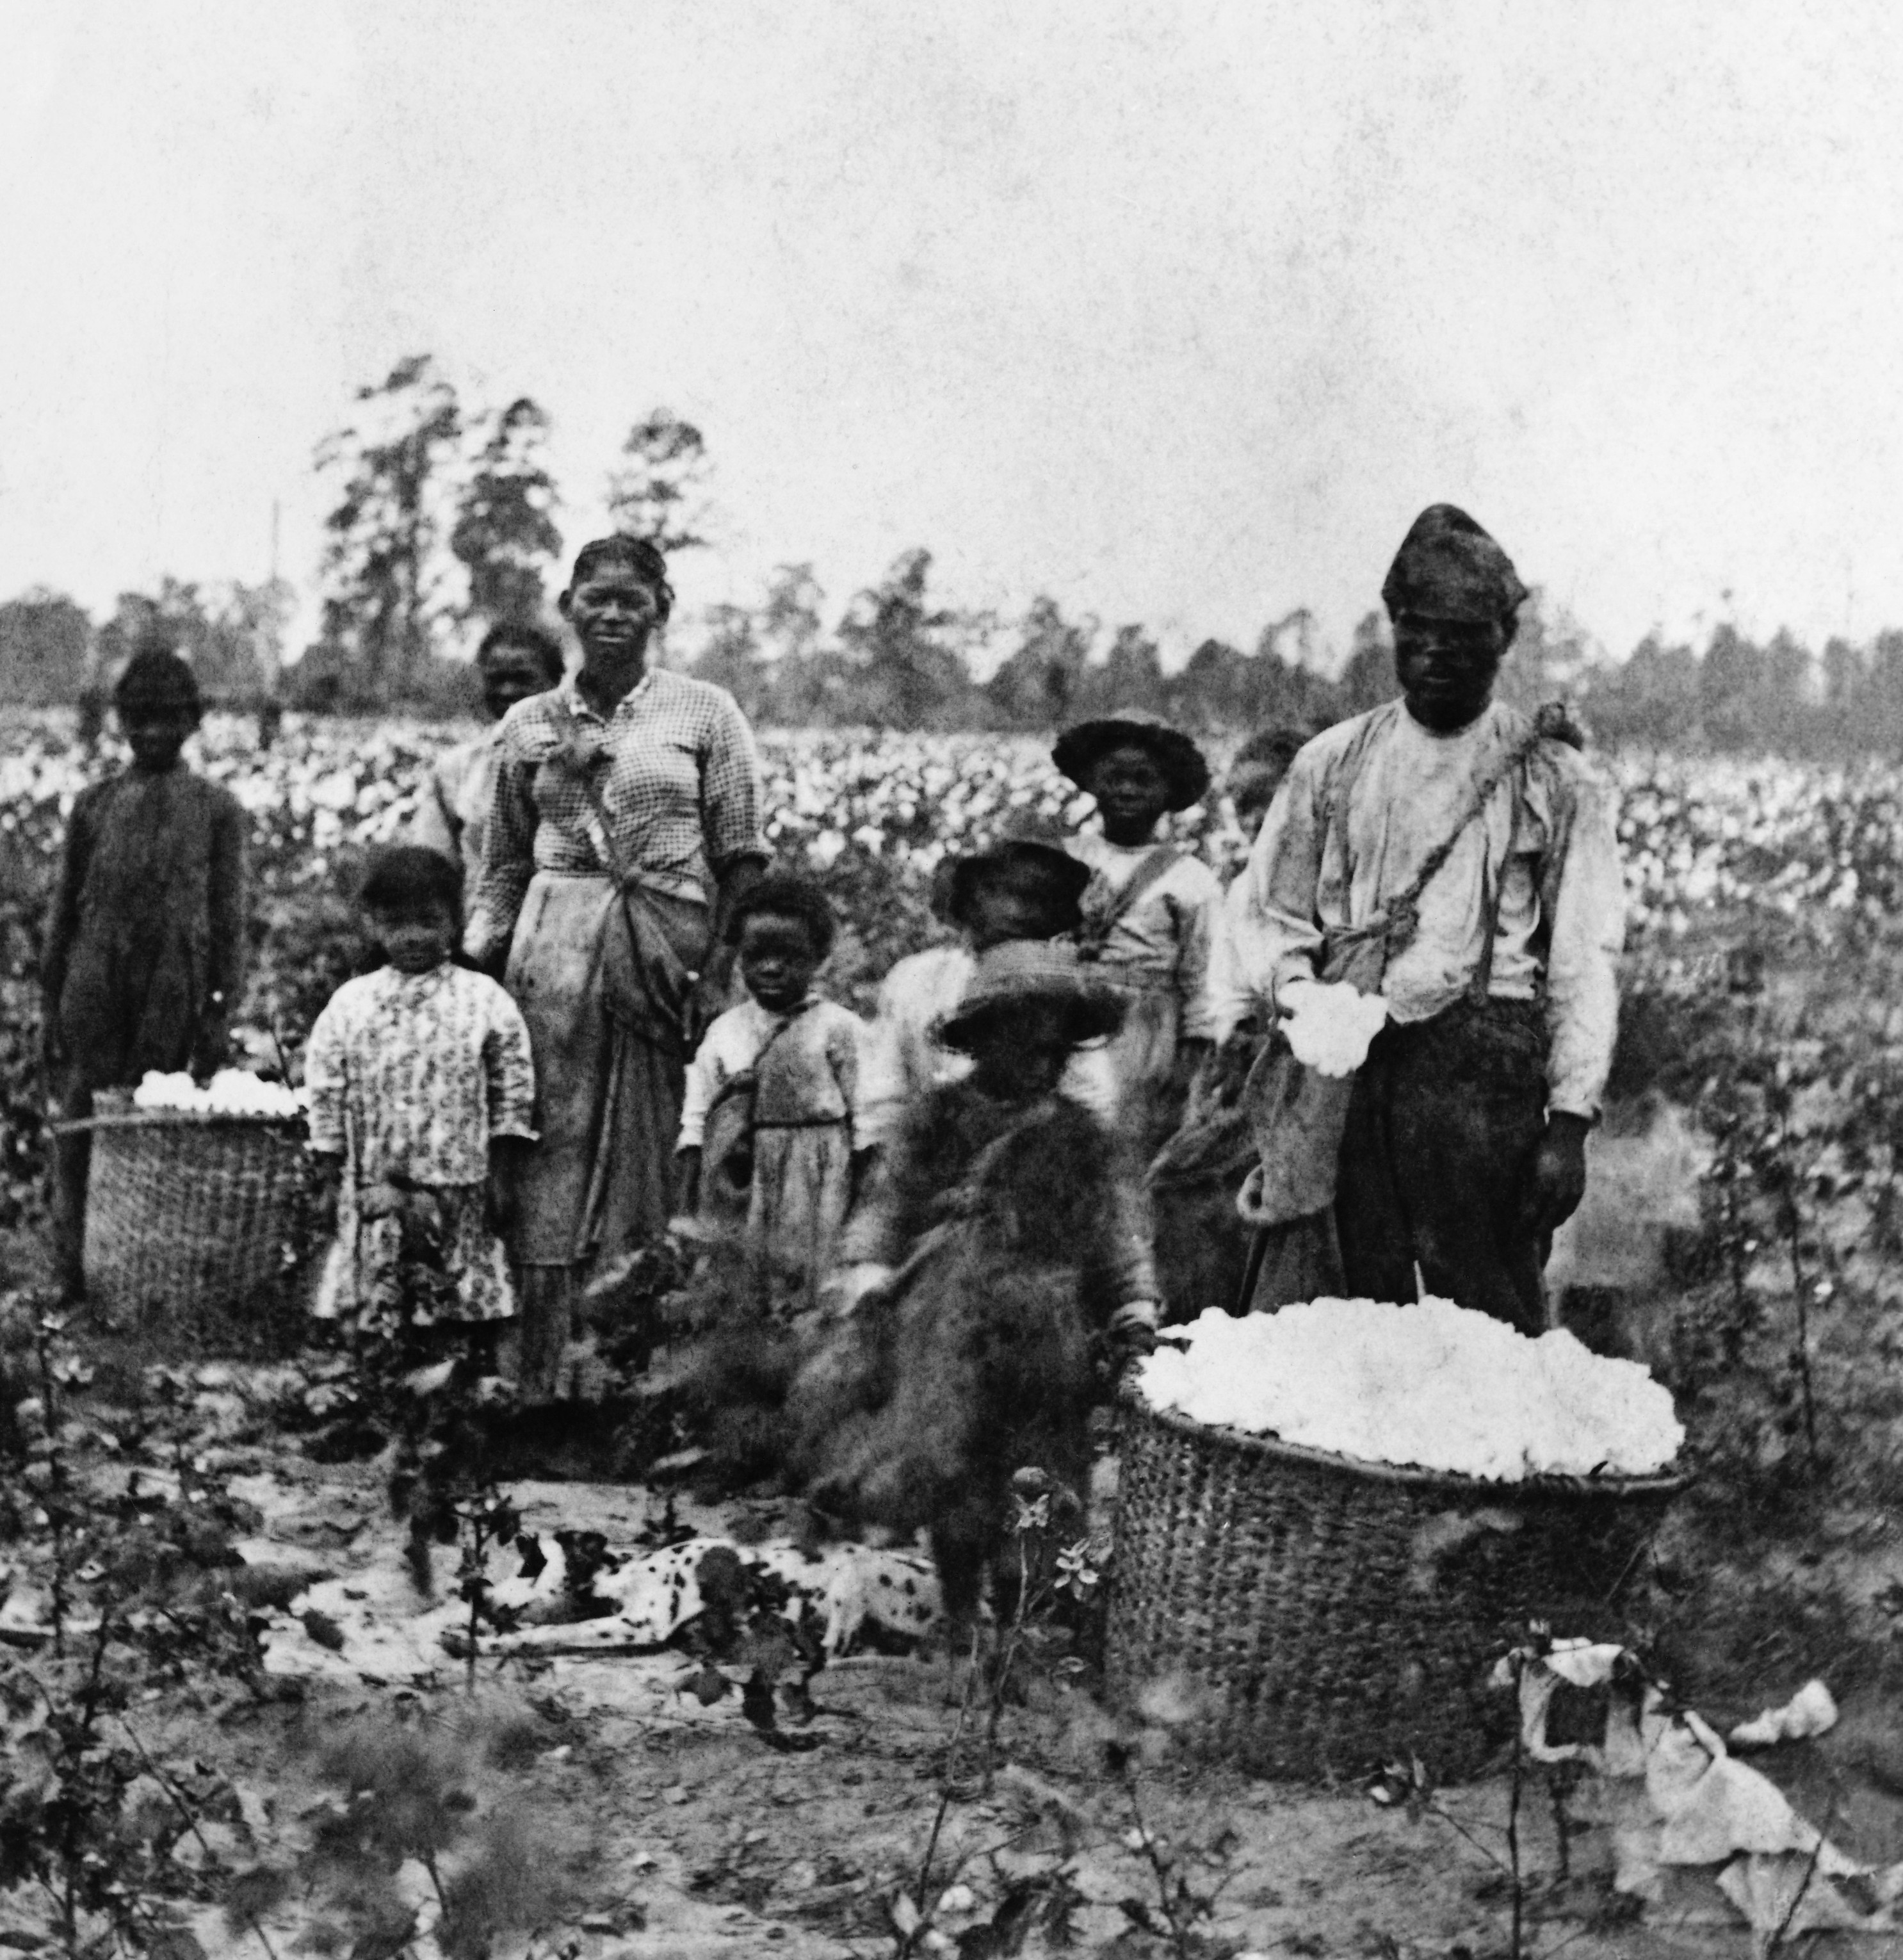 slavery was the dominating reality of all southern life 1820 1860 Slavery was the dominating reality in southern life assess the validity of this generalization for two of the following aspects of southern life from about 1840-1860: political, social, economic, and intellectual life.